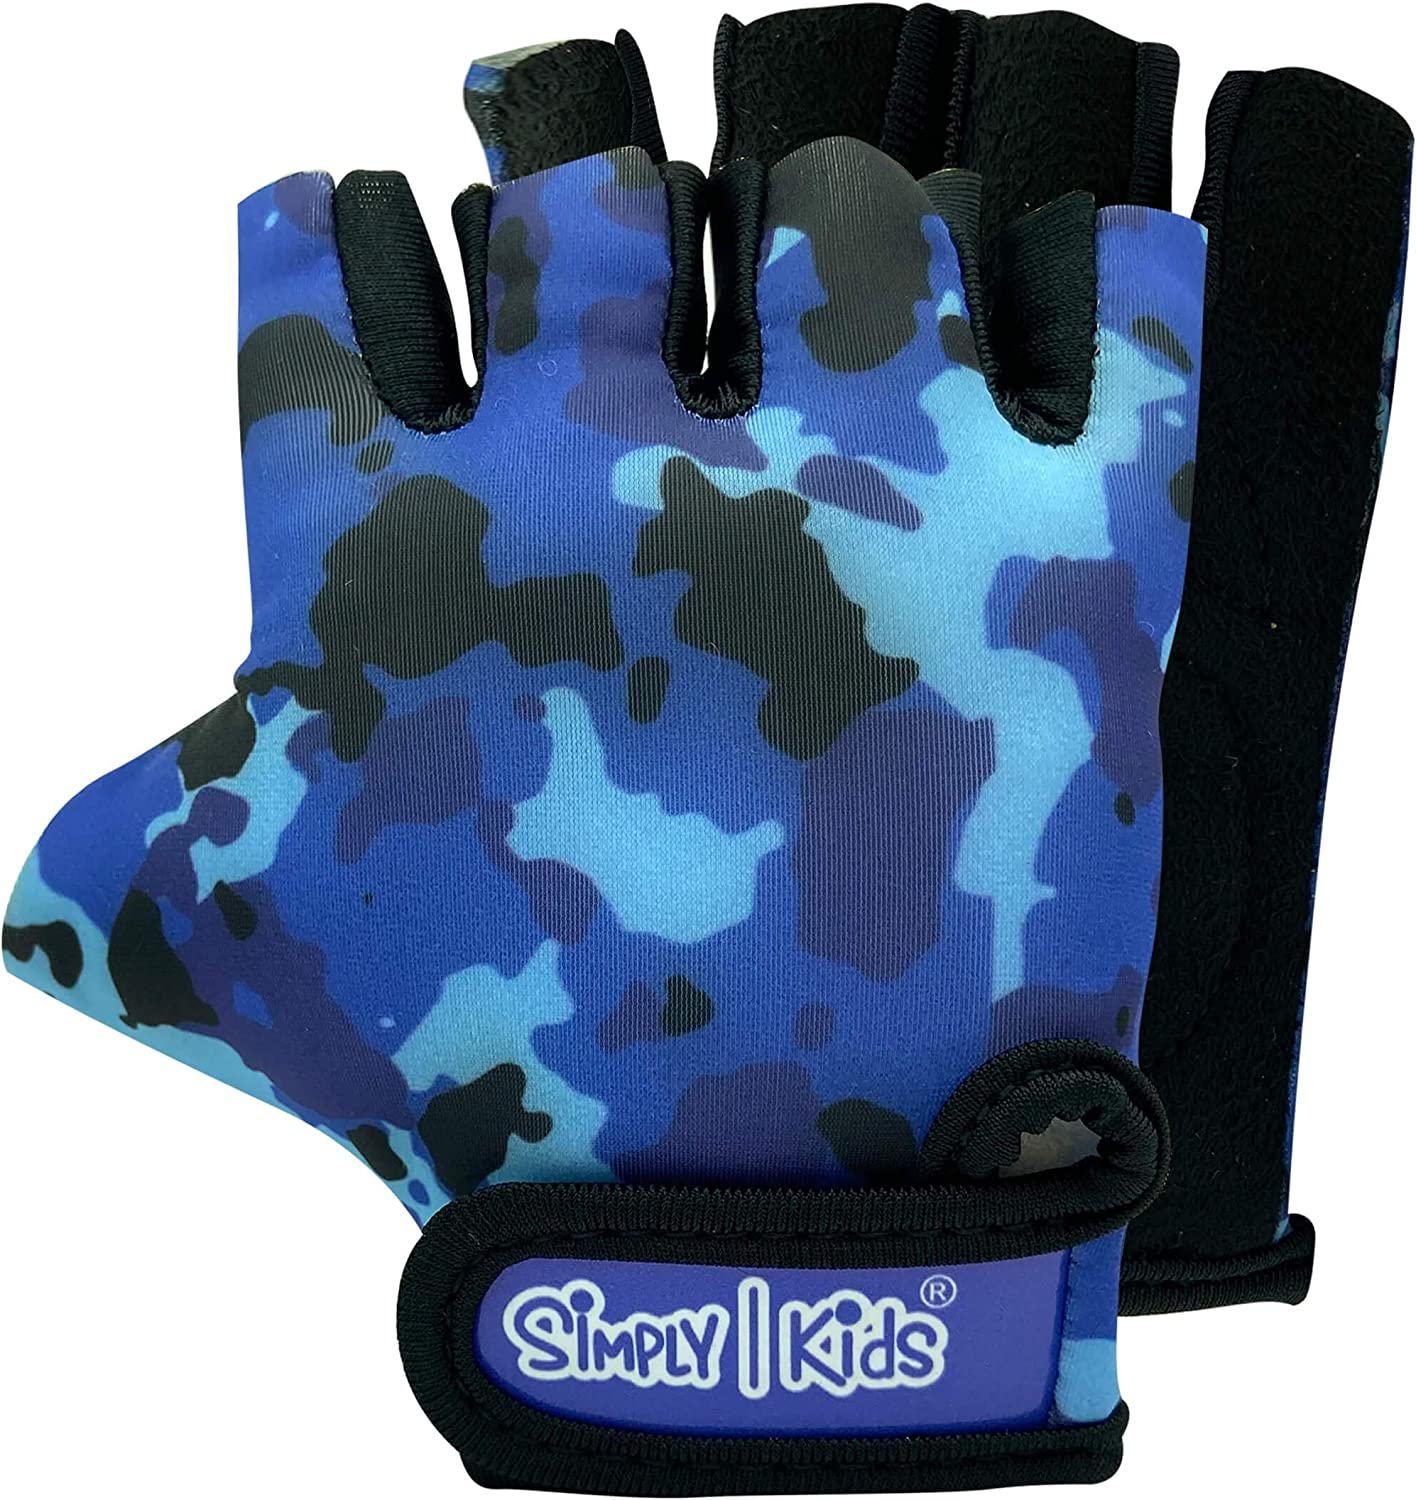 Kids Bike Gloves for Balanced Bike Mountain Bicycle Biking I Breathable Fingerless Toddler Kids Cycling Gloves with Extra Protective Cushions I CPSIA Certified Riding Gloves for Girl Boy Child Youth